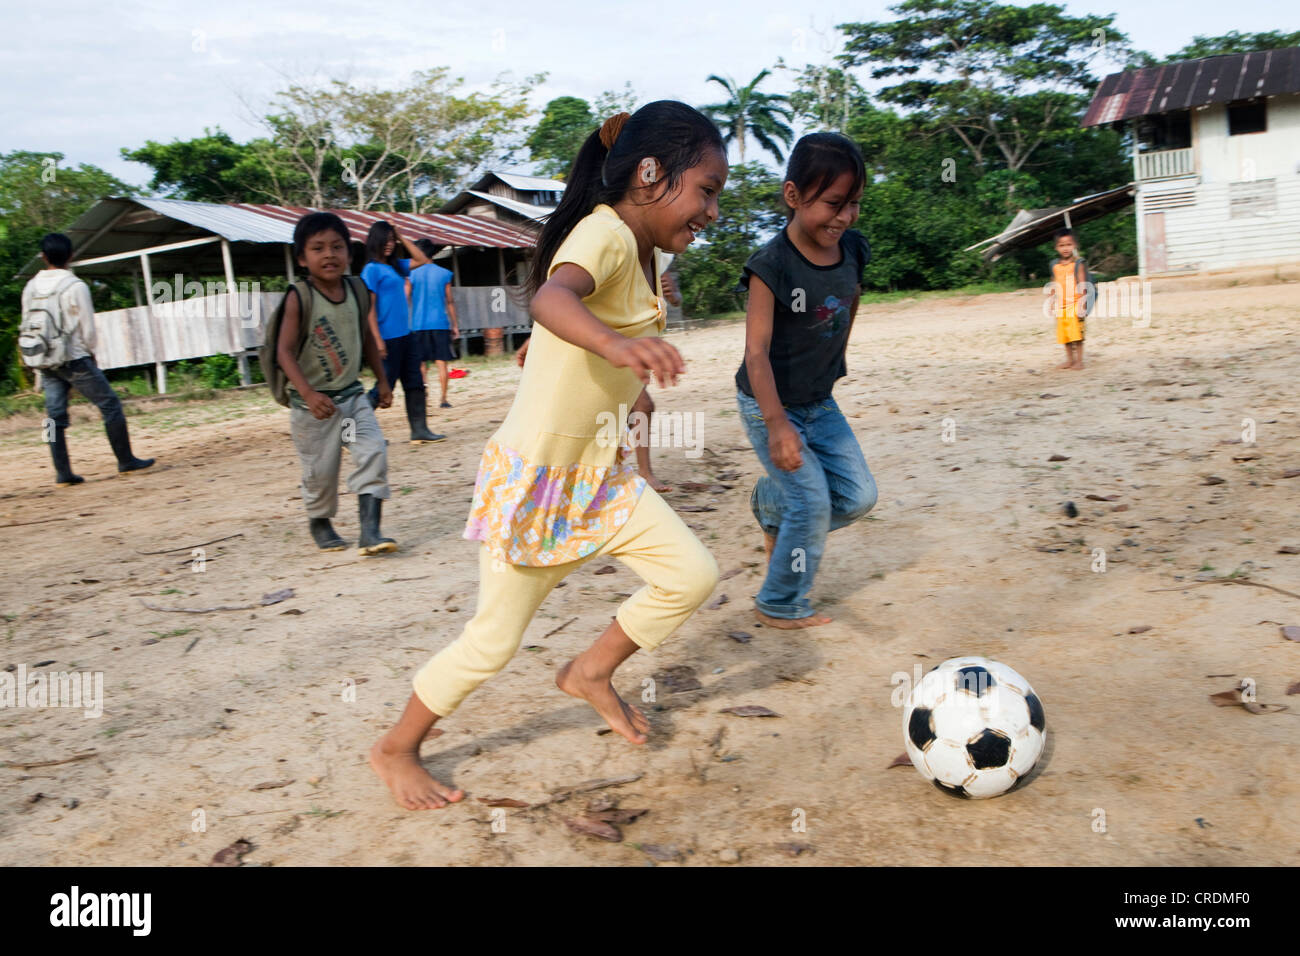 School children playing football in the schoolyard before the start of the lessons, in a village without road access - Stock Image